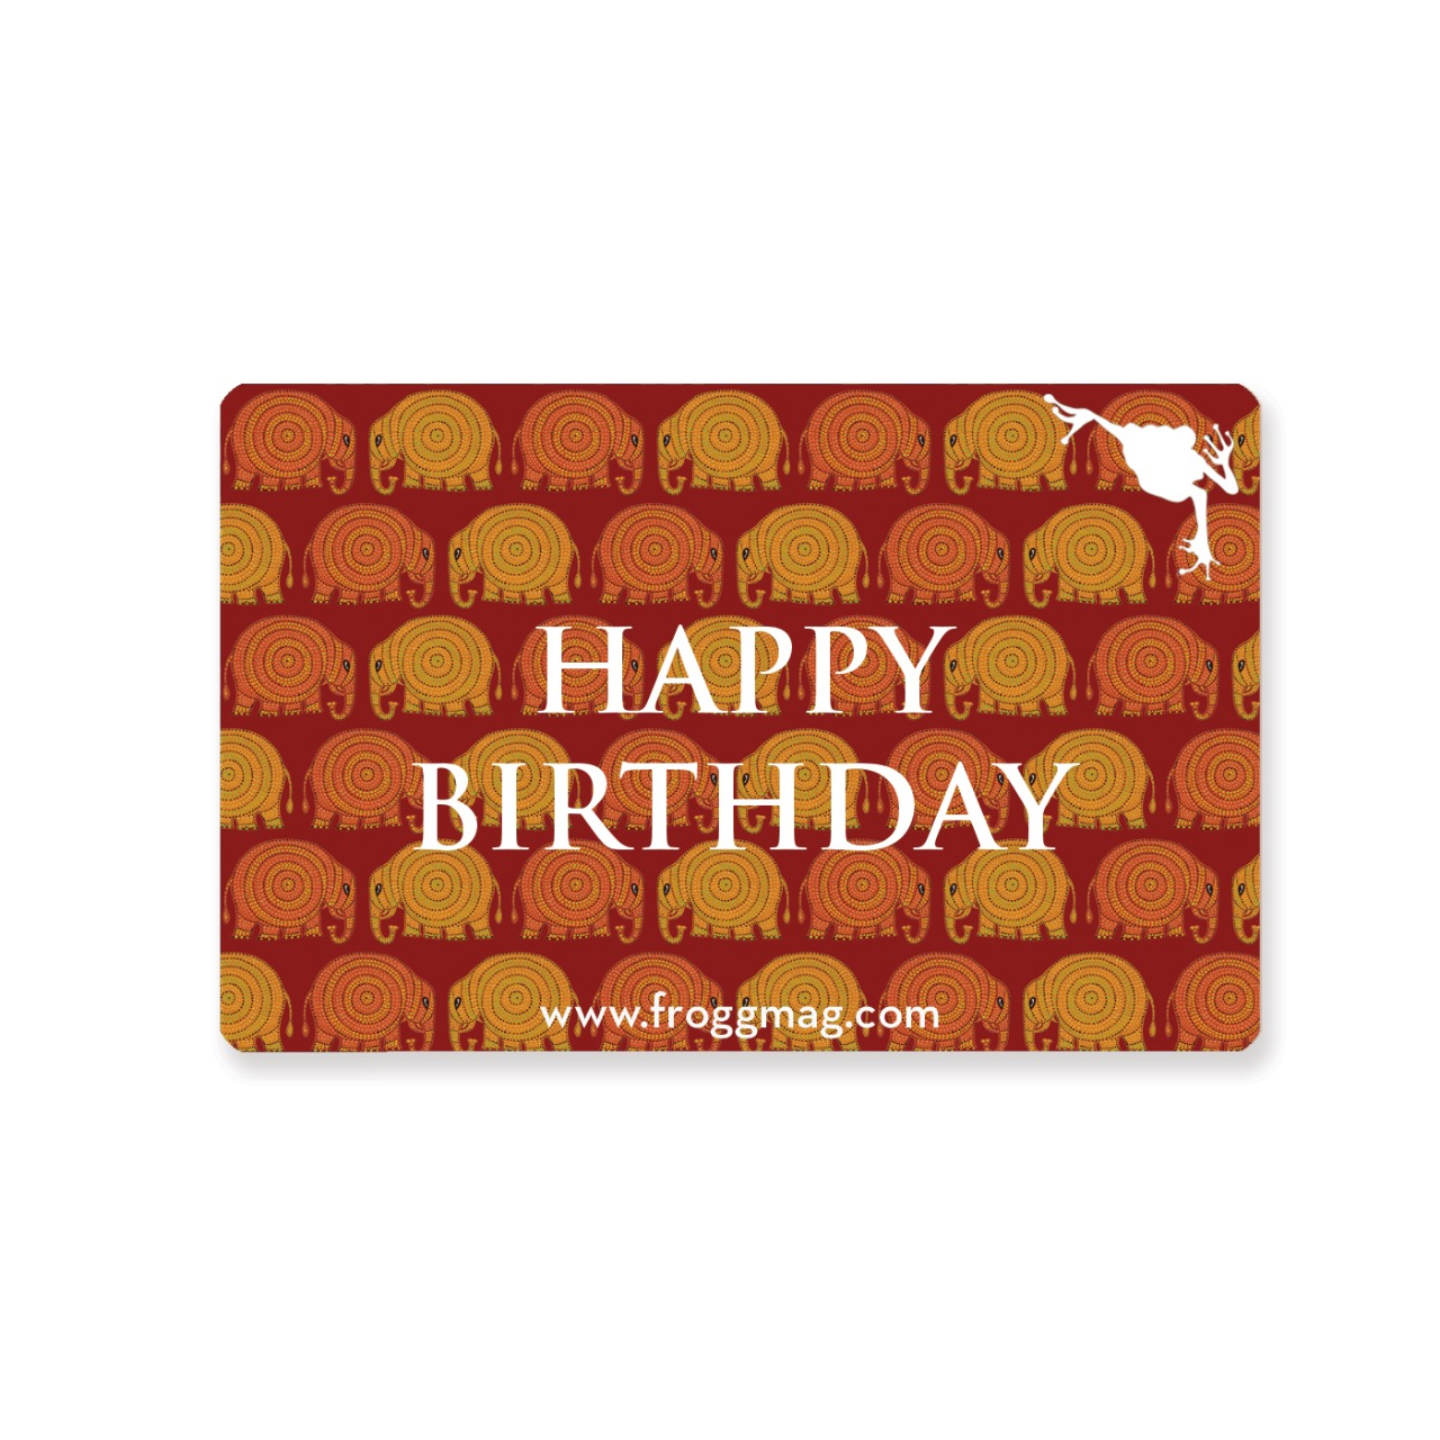 E Gift Voucher - Happy Birthday